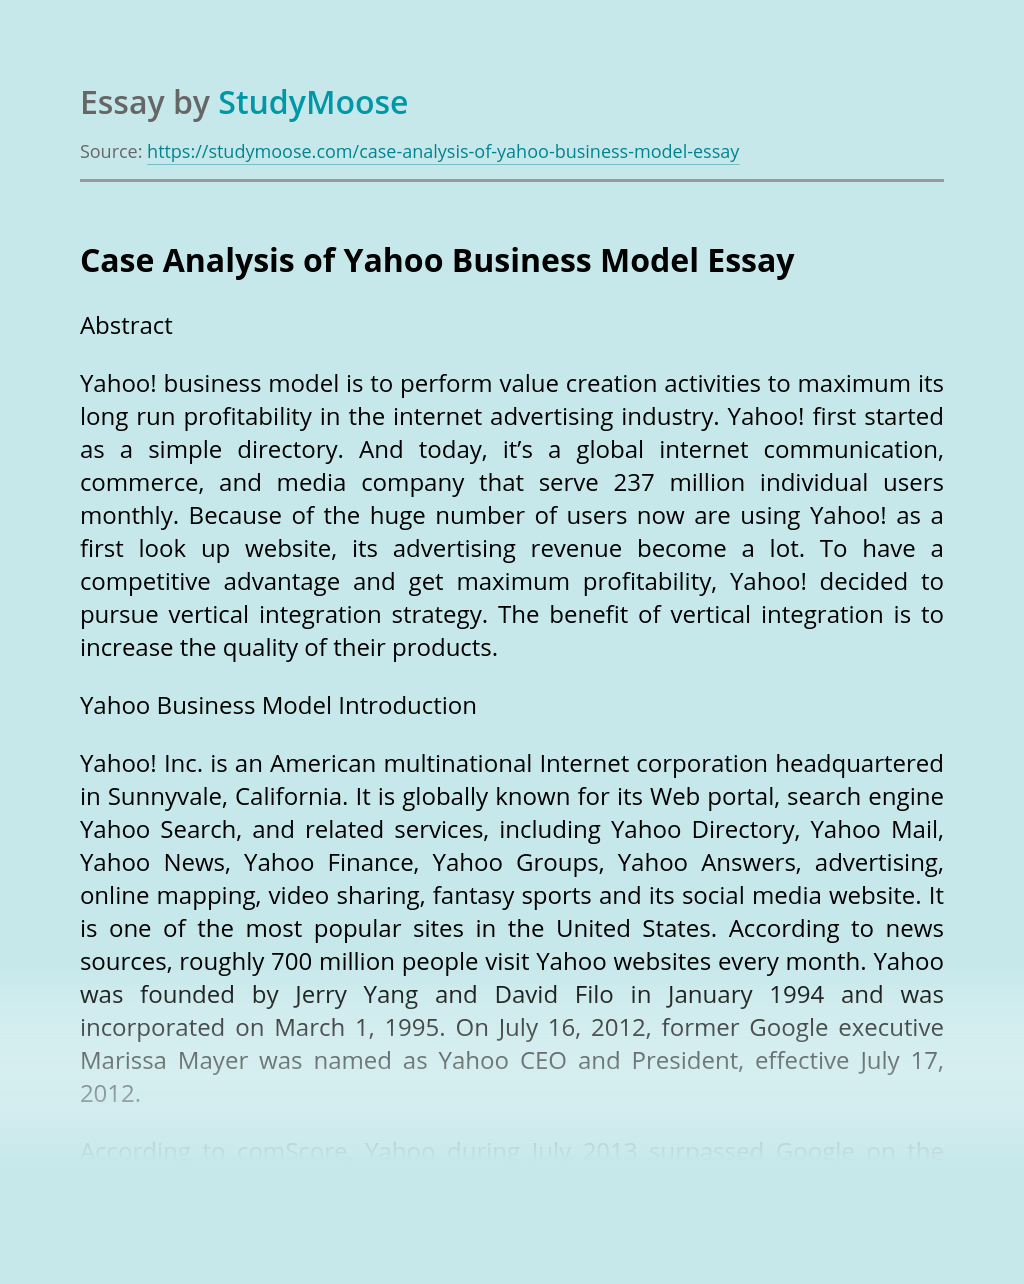 Case Analysis of Yahoo Business Model